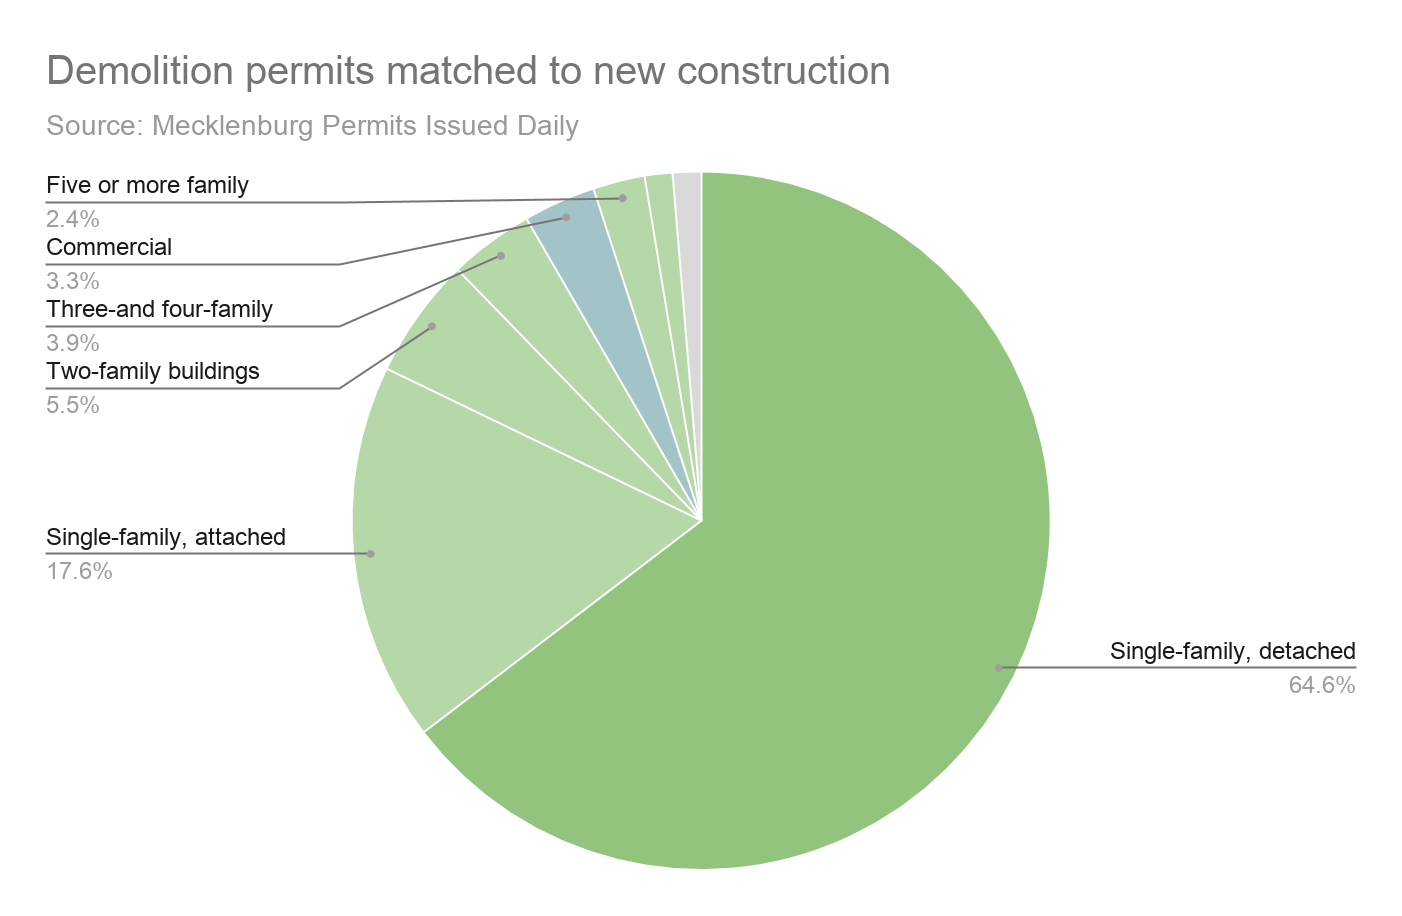 A pie chart of demolition permits matched to new construction.